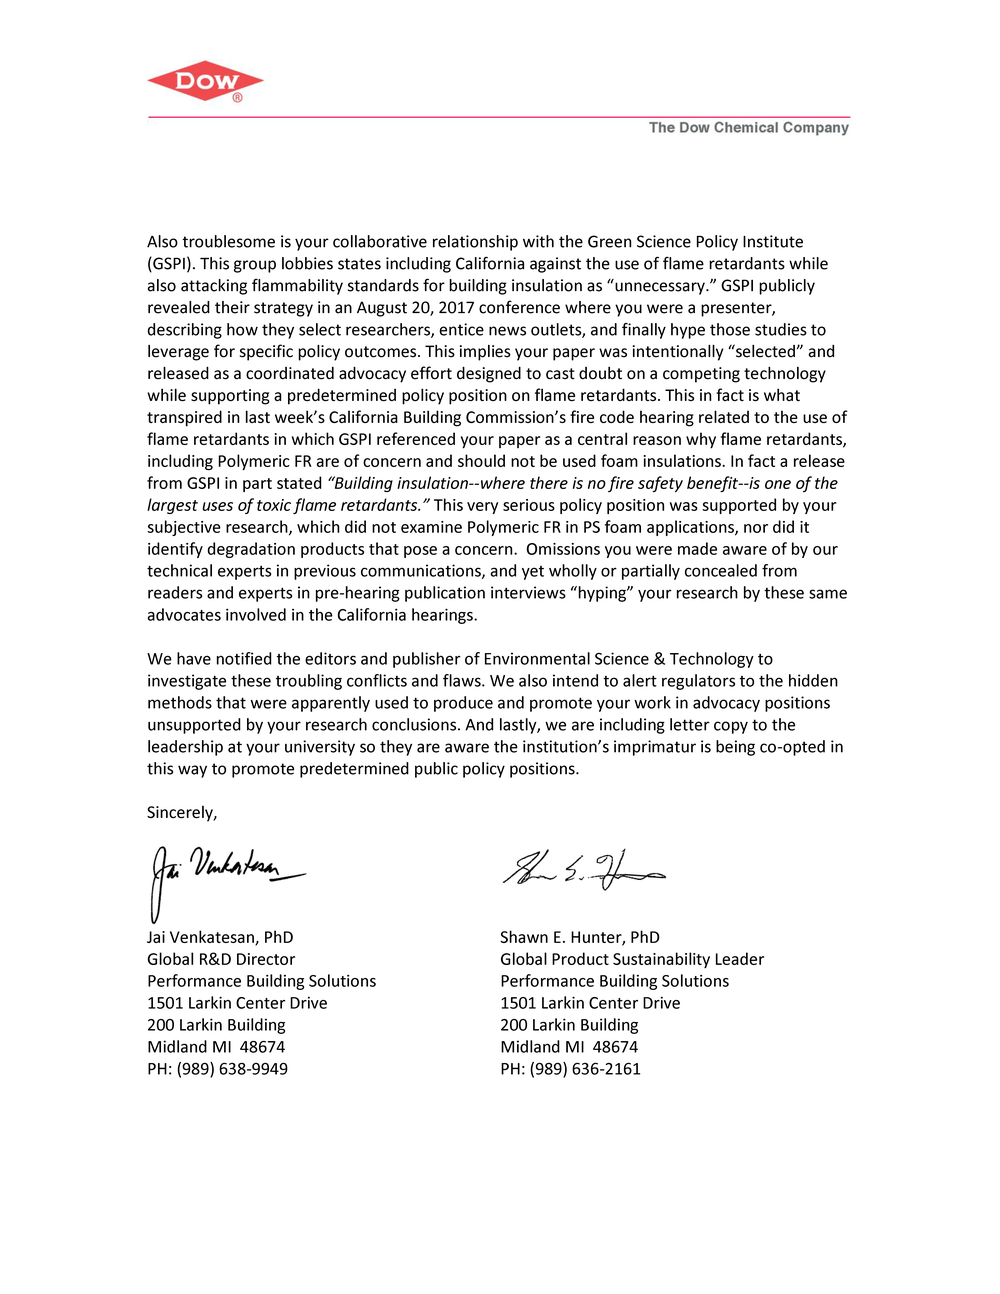 012219-Koch Study Letter1.2_Page_3.png